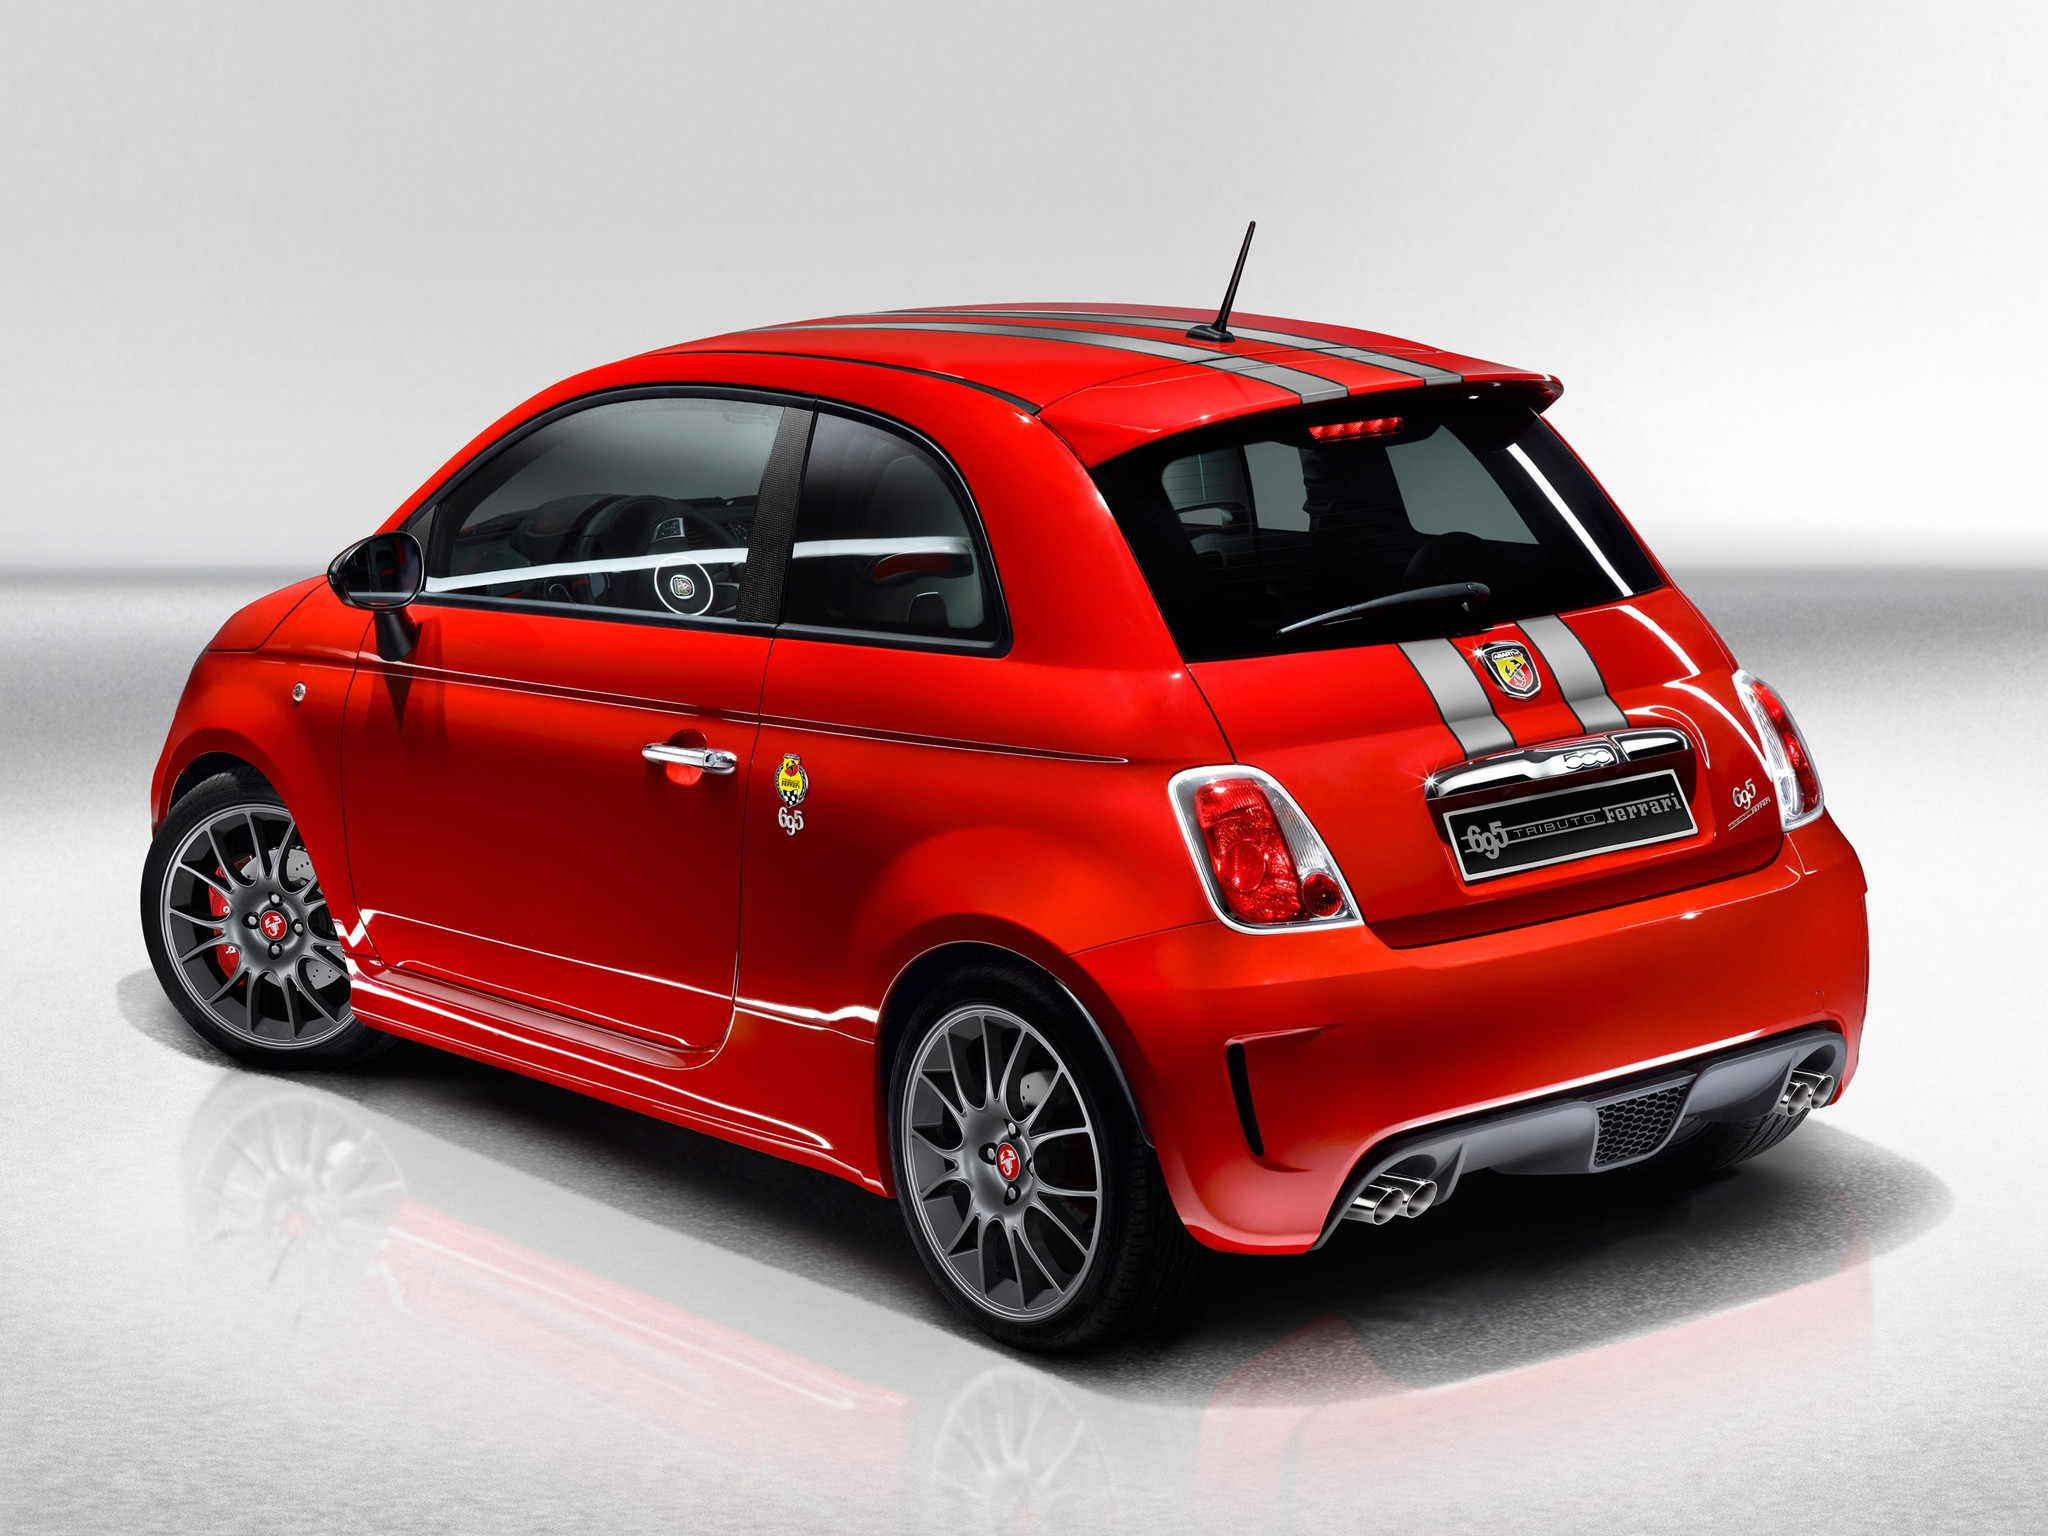 fiat 500 abarth 695 tributo ferrari specs 2009 2010 2011 2012 2013 2014 2015 2016 2017. Black Bedroom Furniture Sets. Home Design Ideas